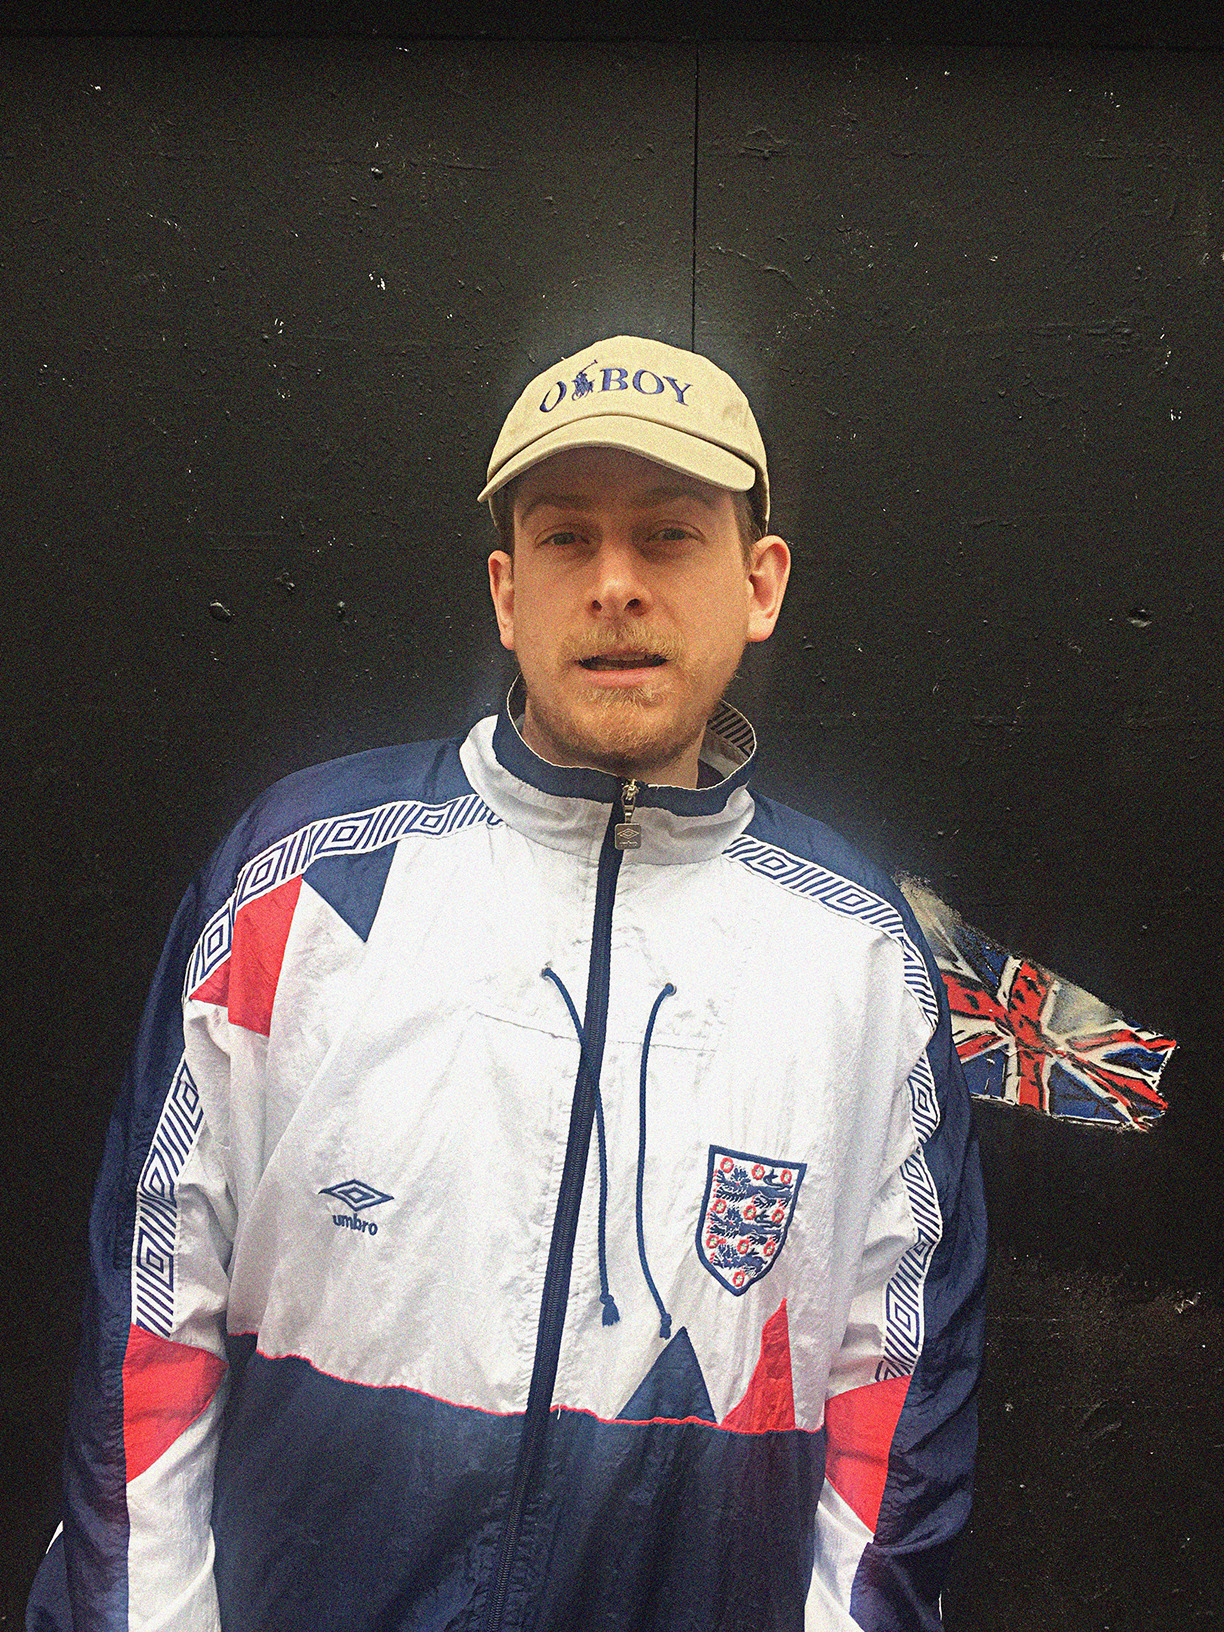 BIG UP DAVE SELECTOR OF @STICKERCHASE LOOKING HIS USUAL CHURPY SELF WEARING OUR OIBOY SIX LEGGER CAP. CHECK OUT THEIR AMAZING FUNDRAISING WORK FOR SPORTS RELIEF AT  WWW.STICKERCHASE.WORLD